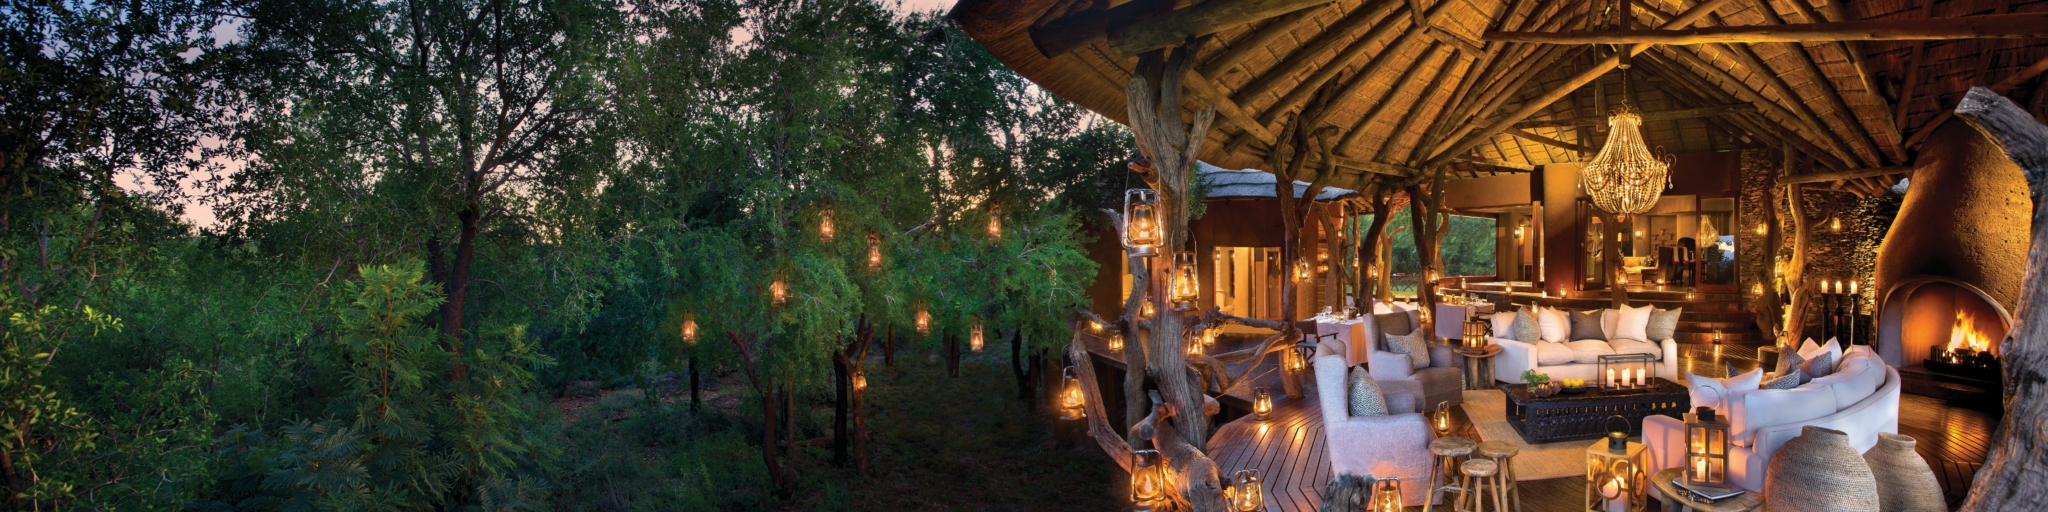 Madikwe Safari Lodge - Madikwe Game Reserve - South Africa